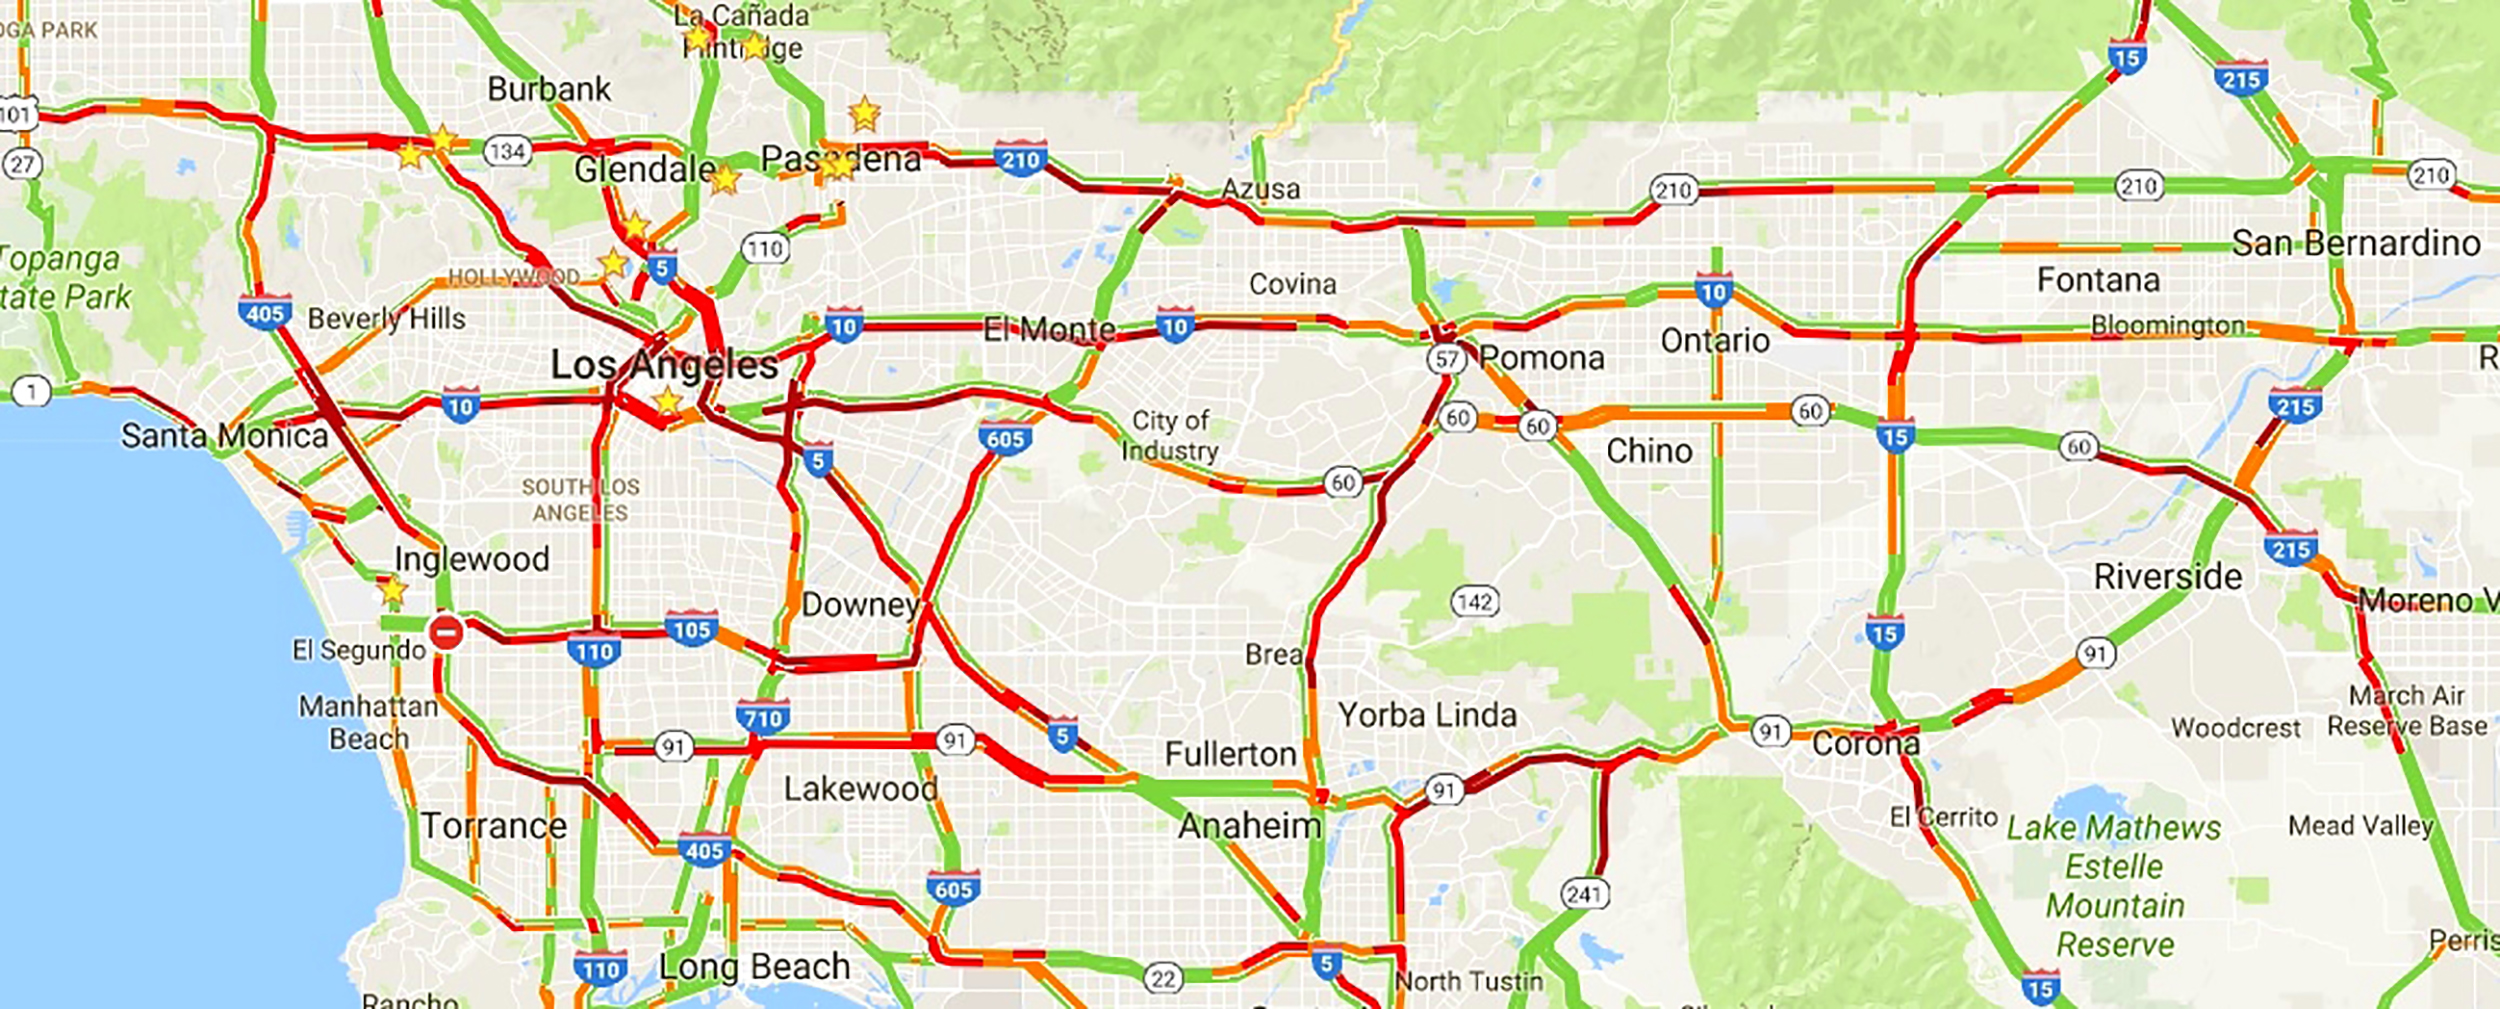 IMAGE: Los Angeles traffic